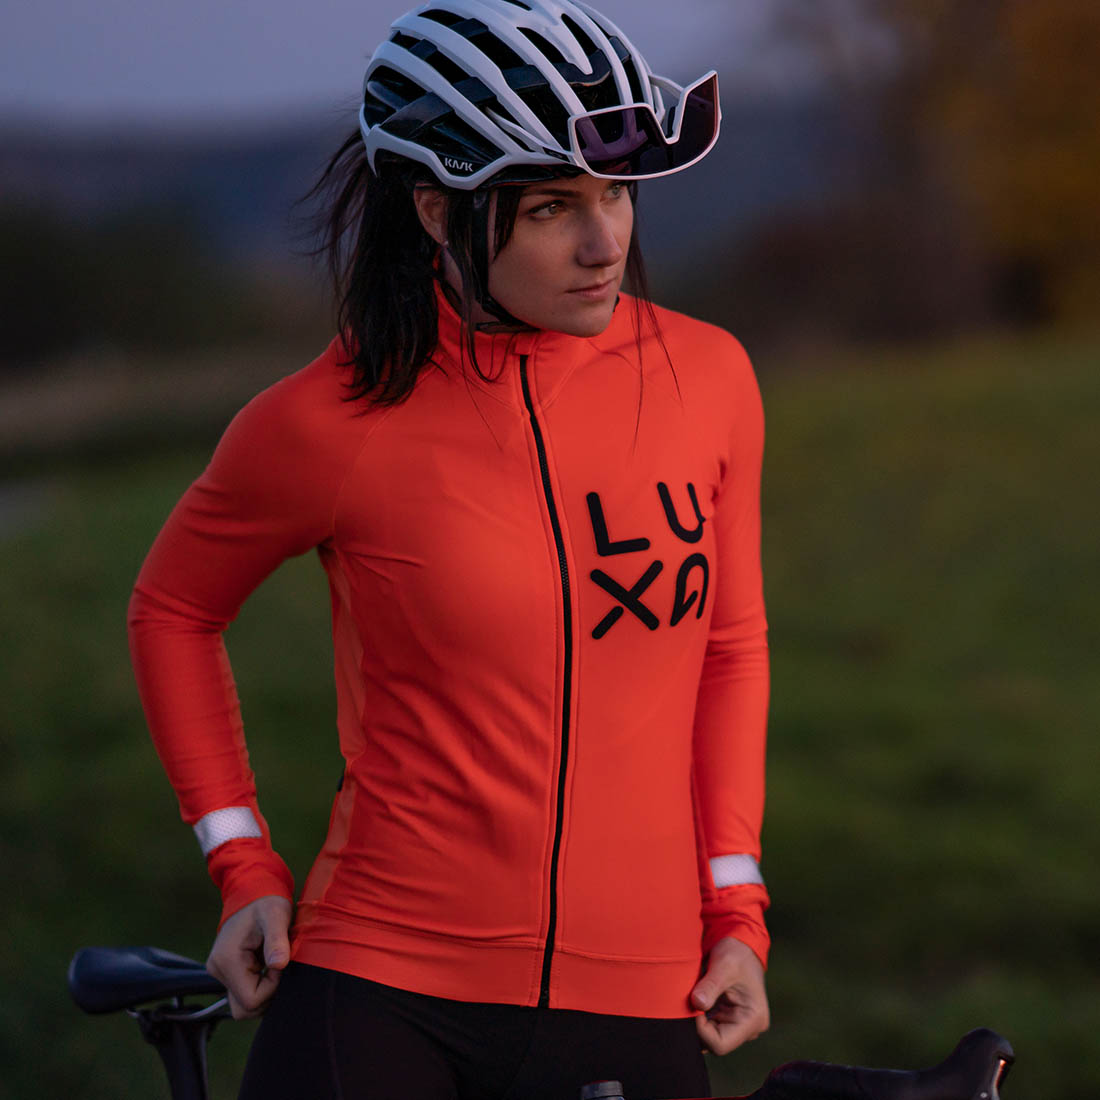 orange vision long sleeve jacket for men and woman cyclists